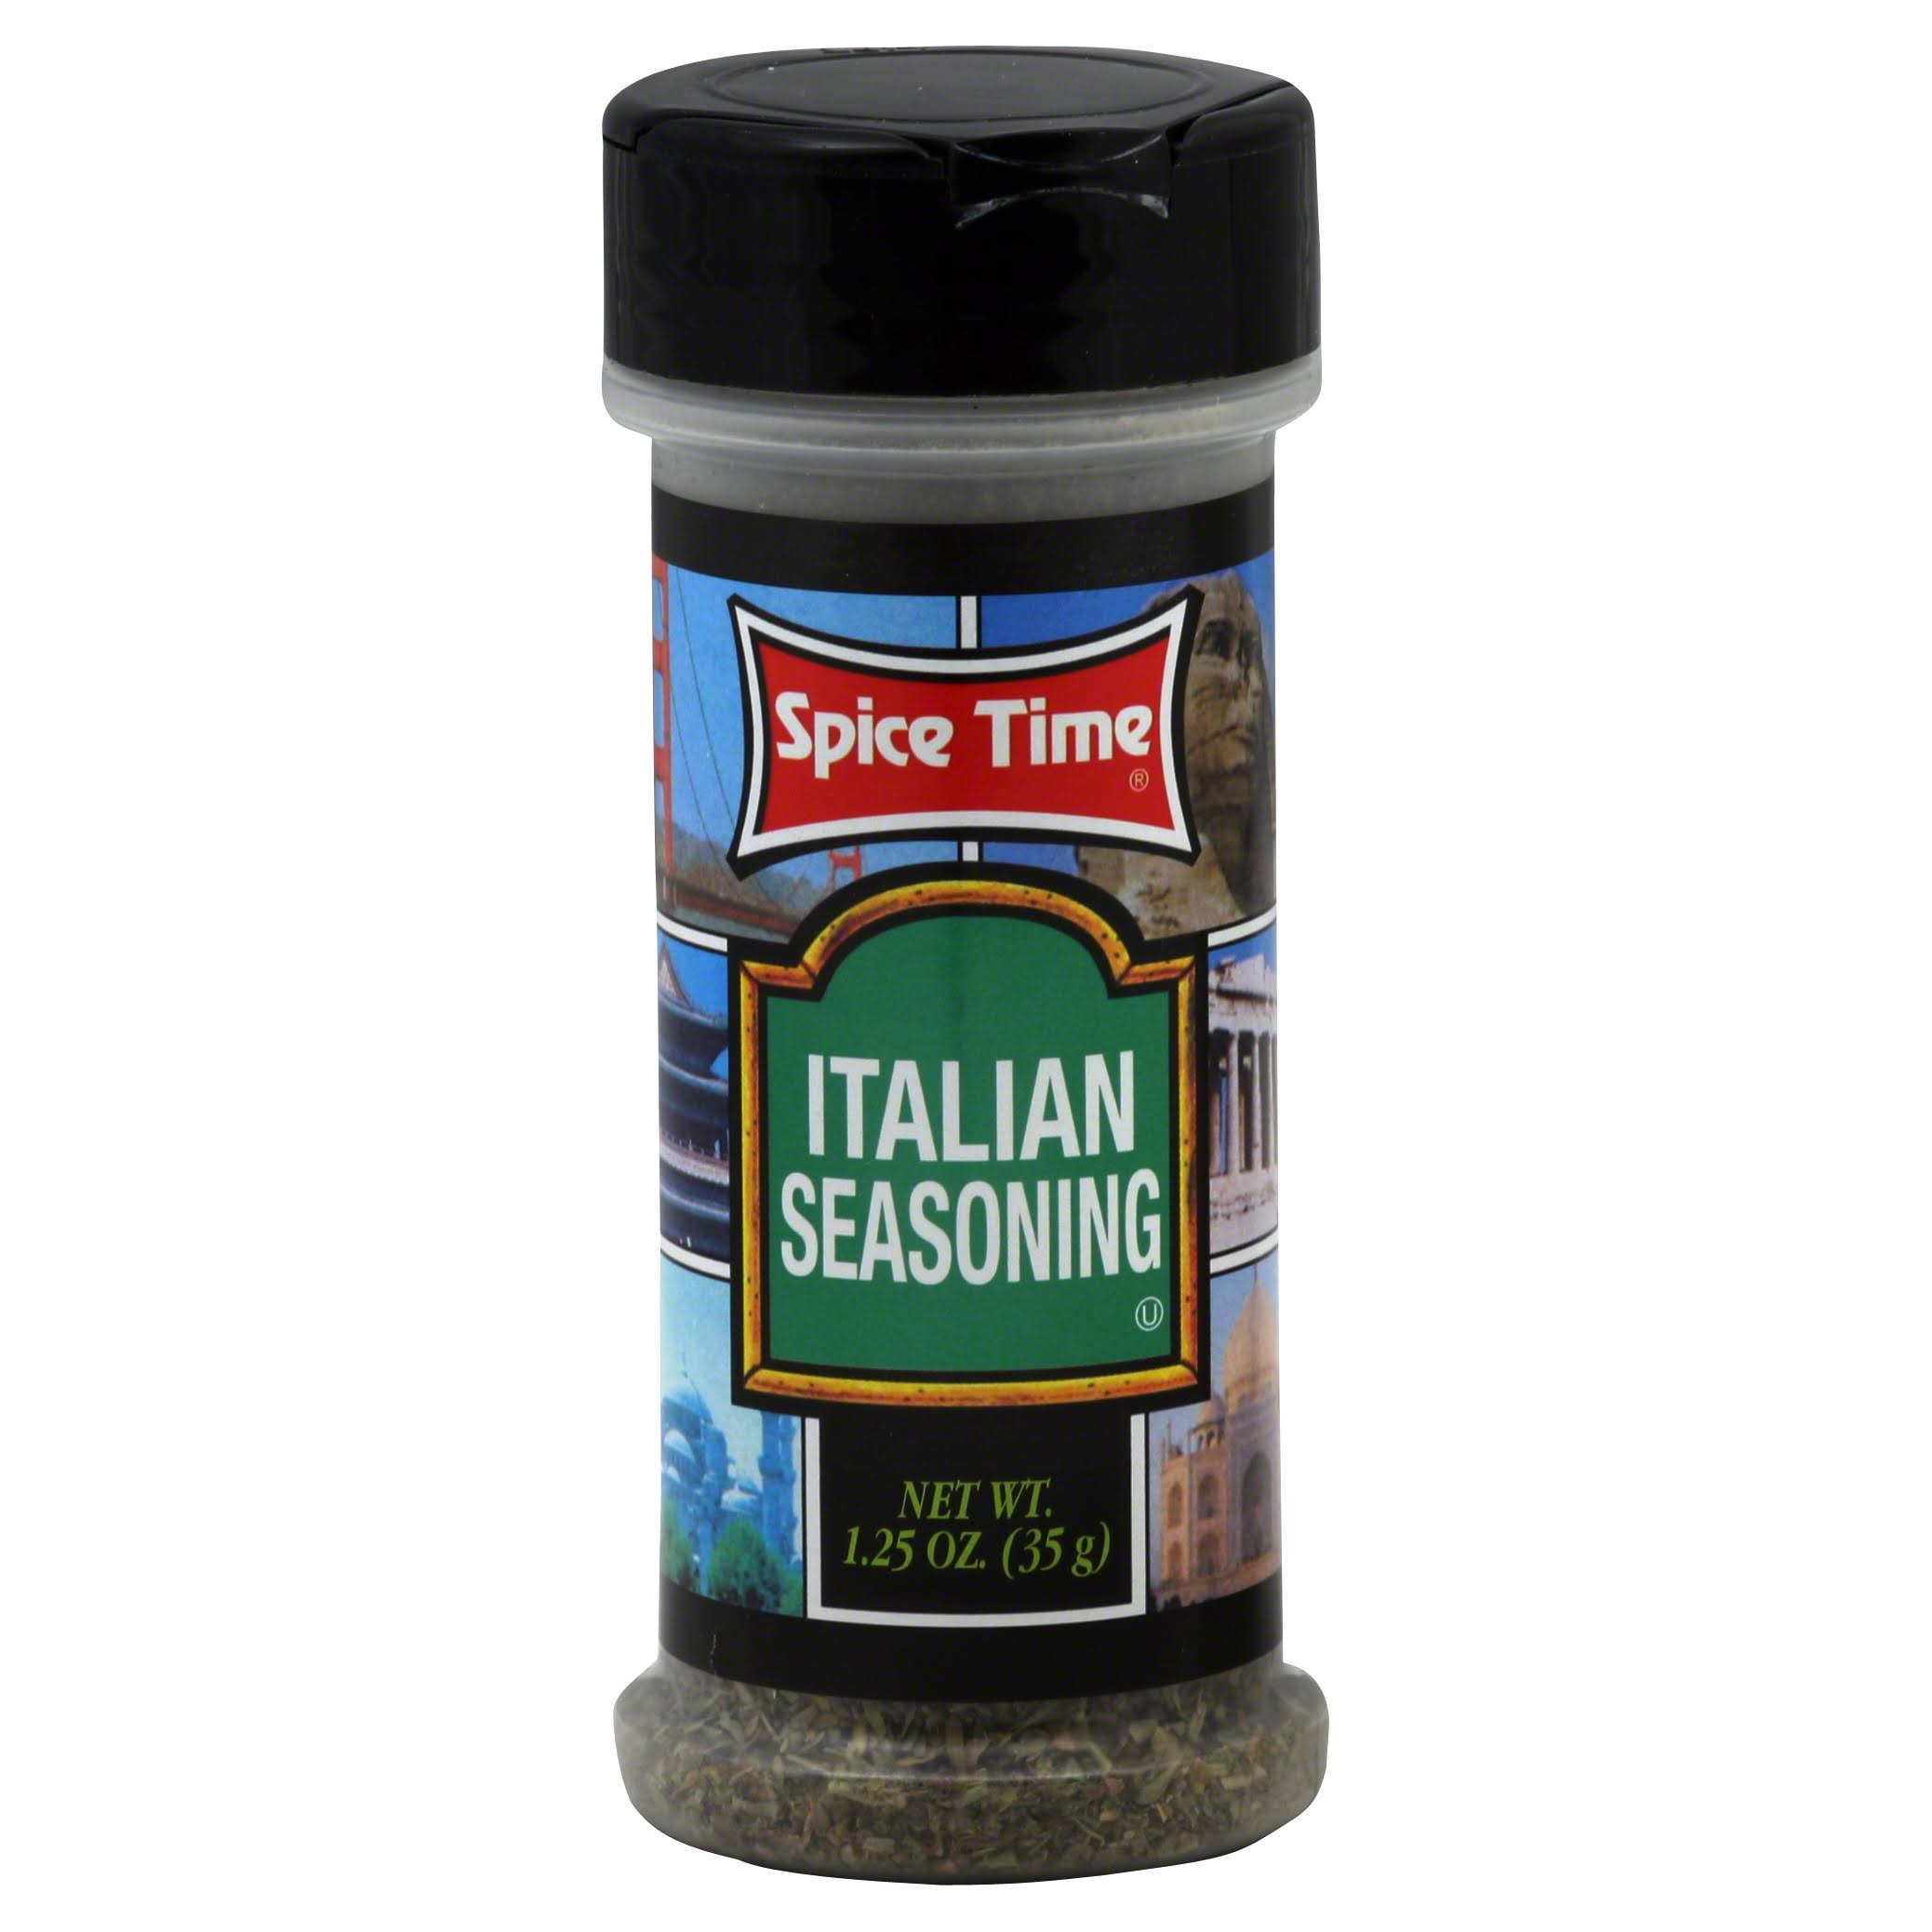 Spice Time Seasoning, Italian - 1.25 oz